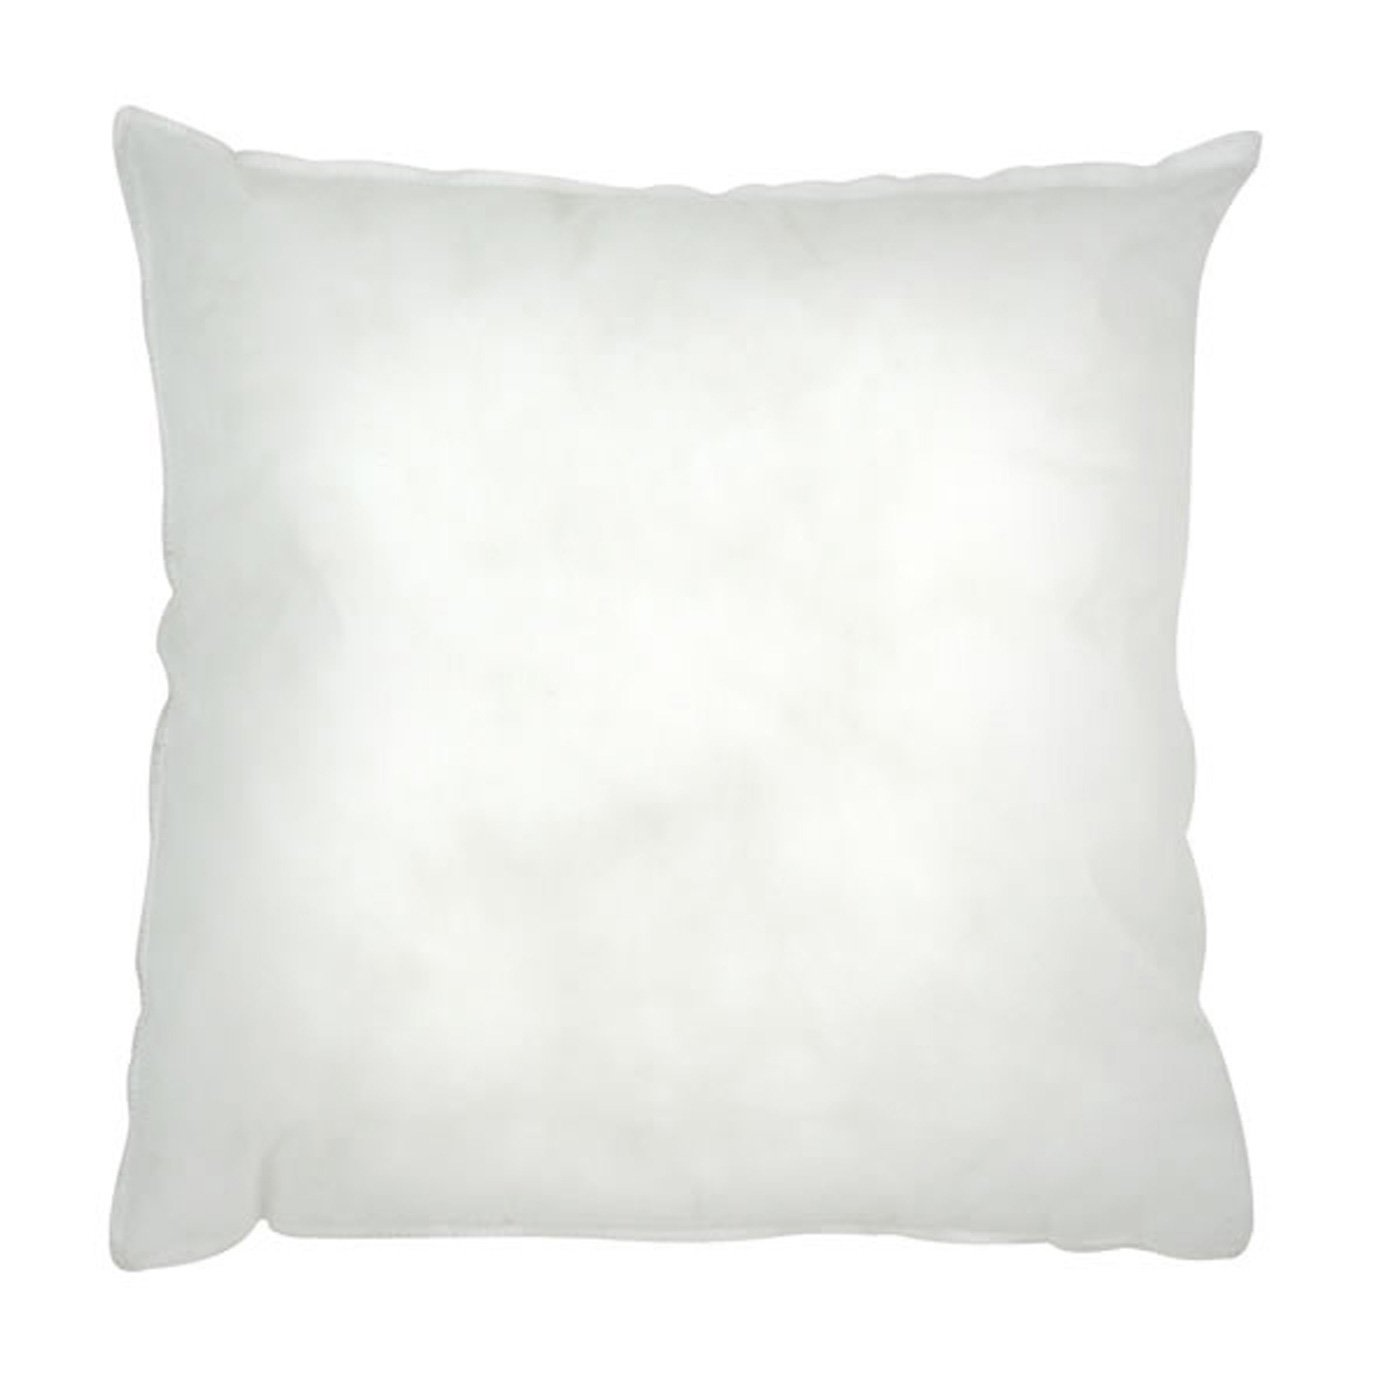 Riva Home Polyester Vacuum Packed Cushion Pad (18 x 18 inch) (White) UTRV942_1